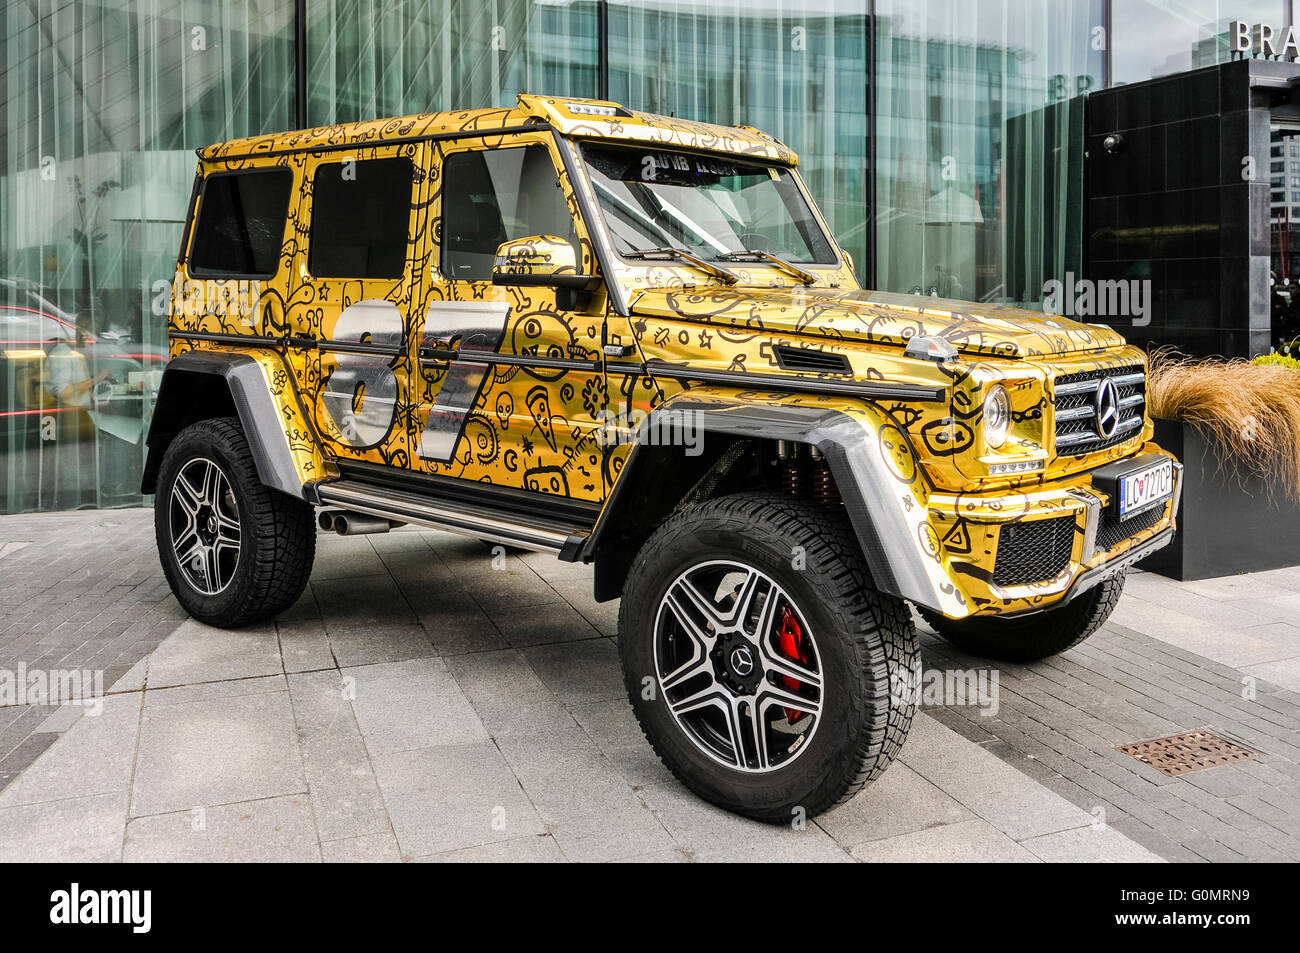 Gold Paintwork High Resolution Stock Photography And Images Alamy